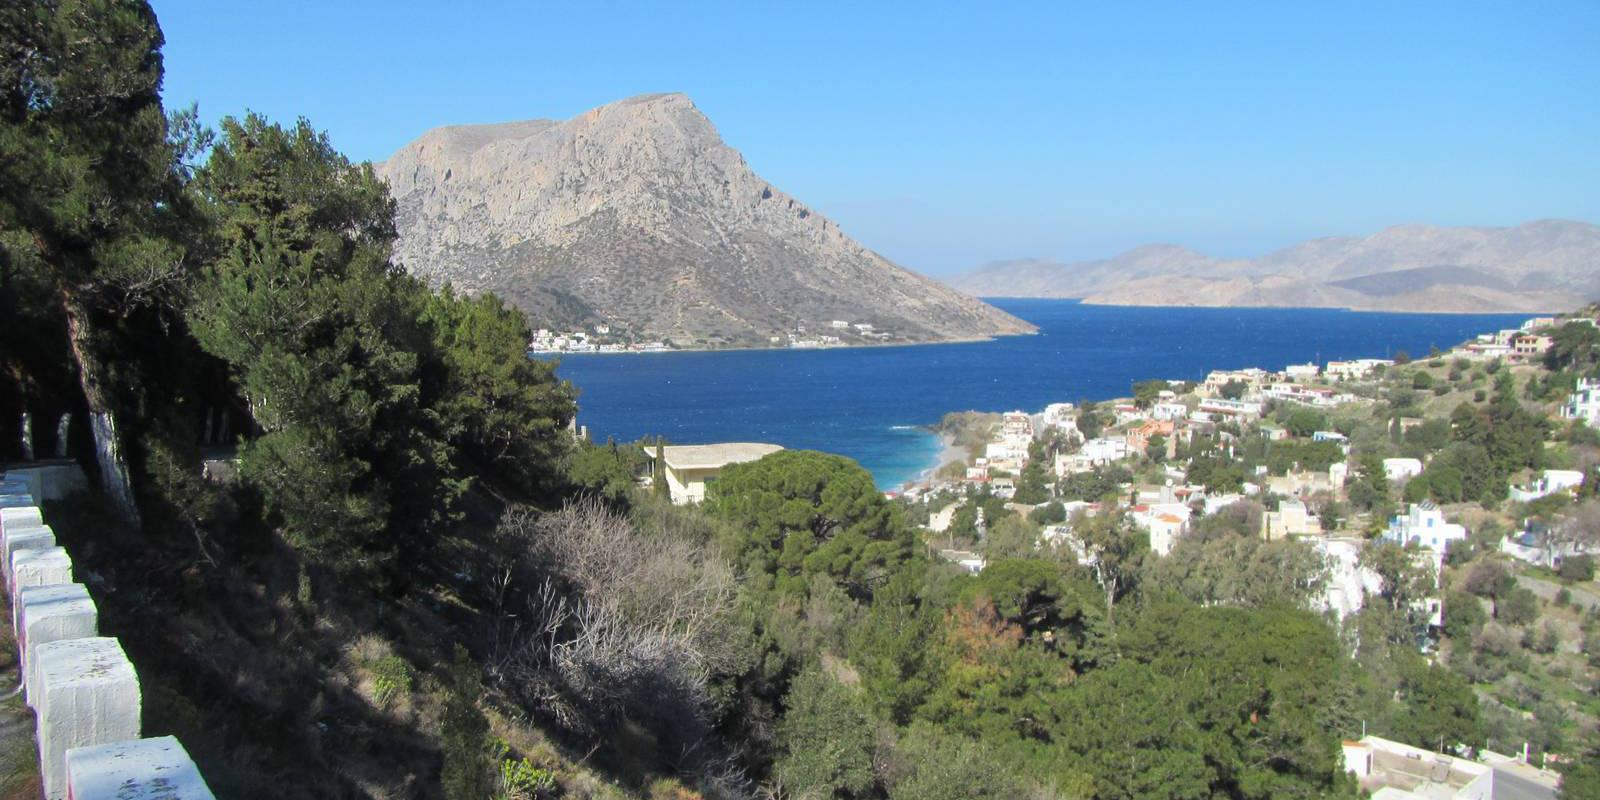 The most famous scenery of Kalymnos Island!